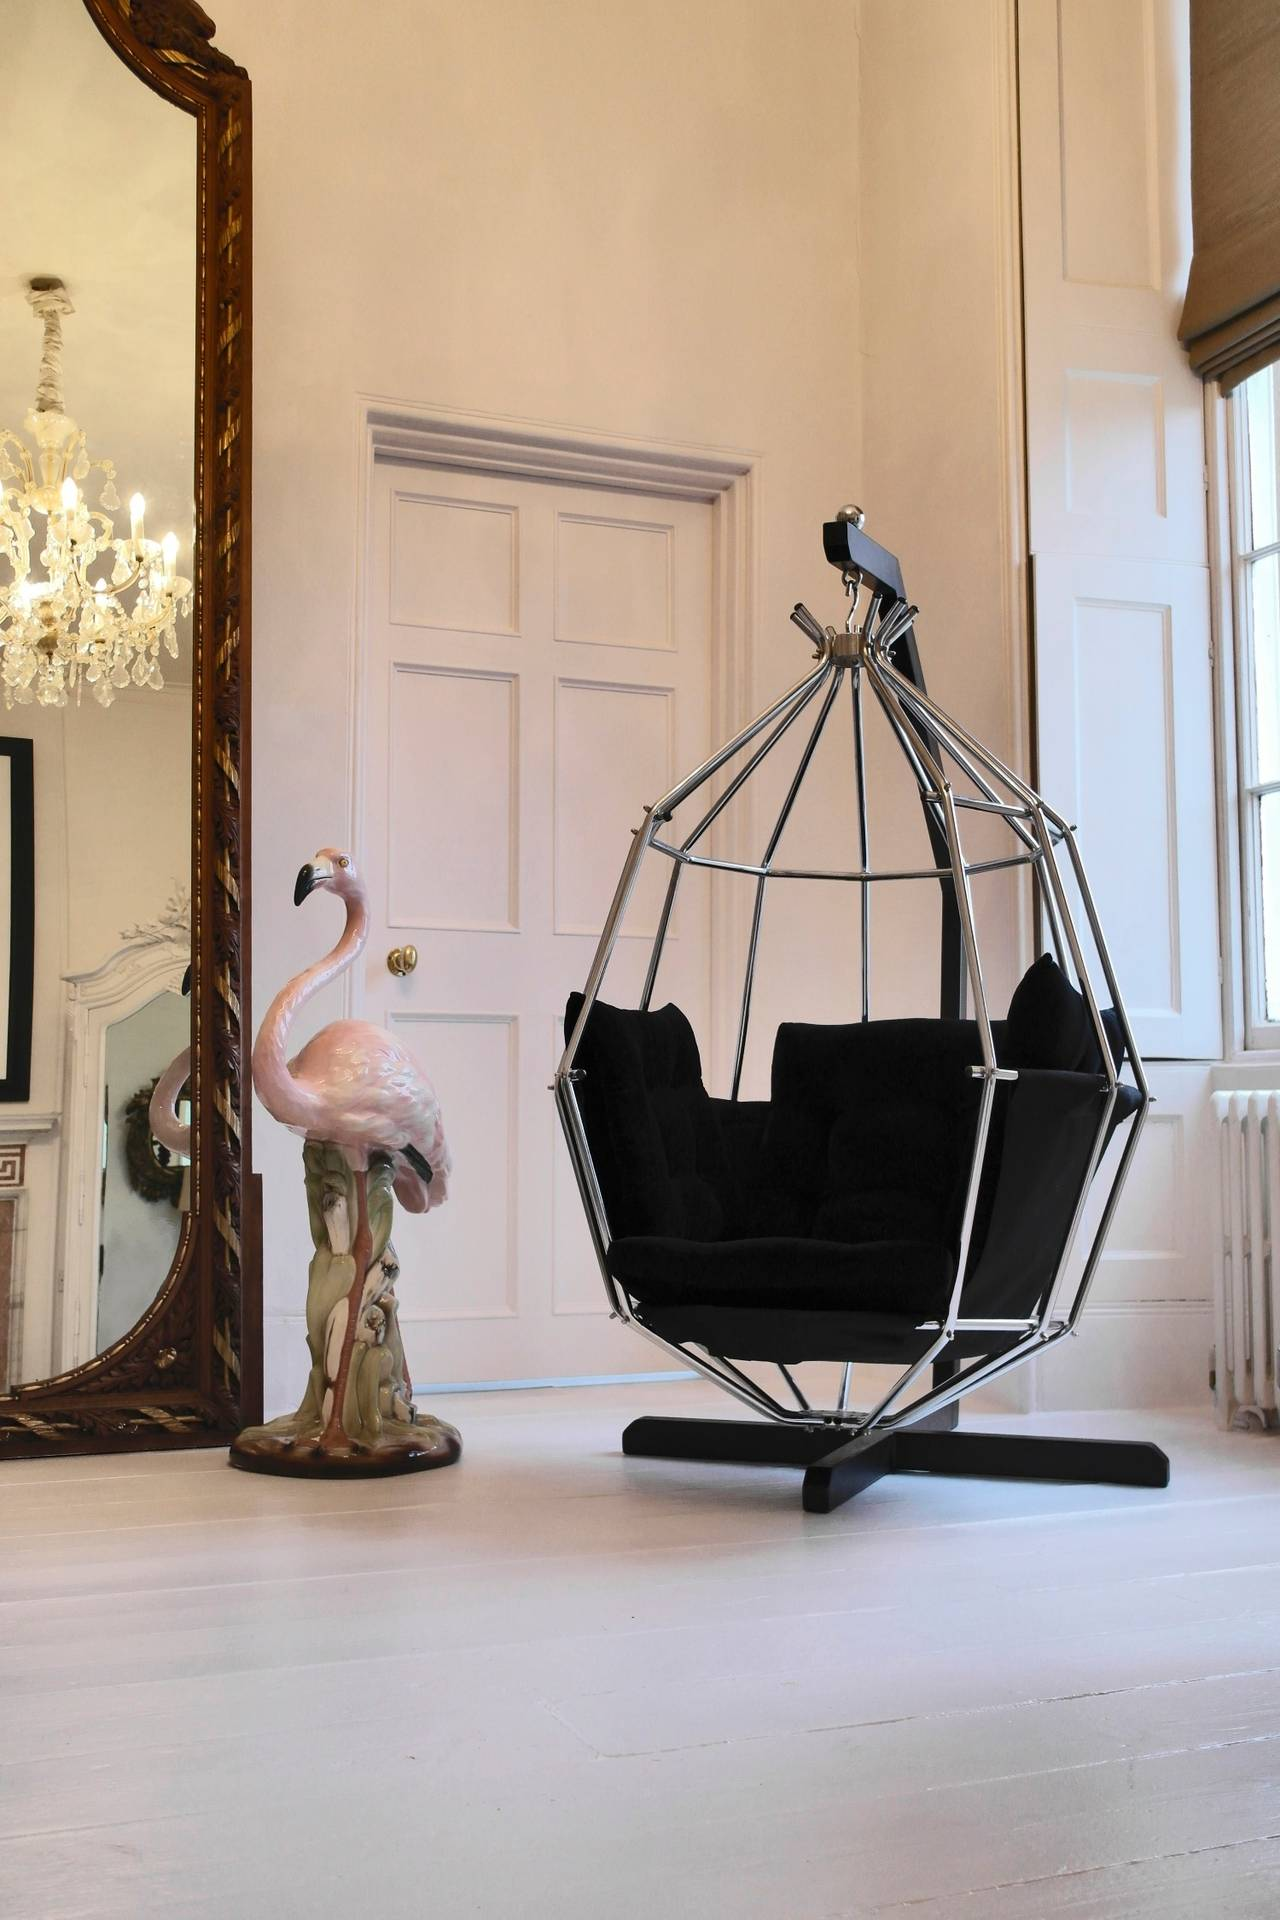 Retro 1970s Hanging Birdcage Chair by Ib Arberg, Arbre Designs Parrot Chair 2